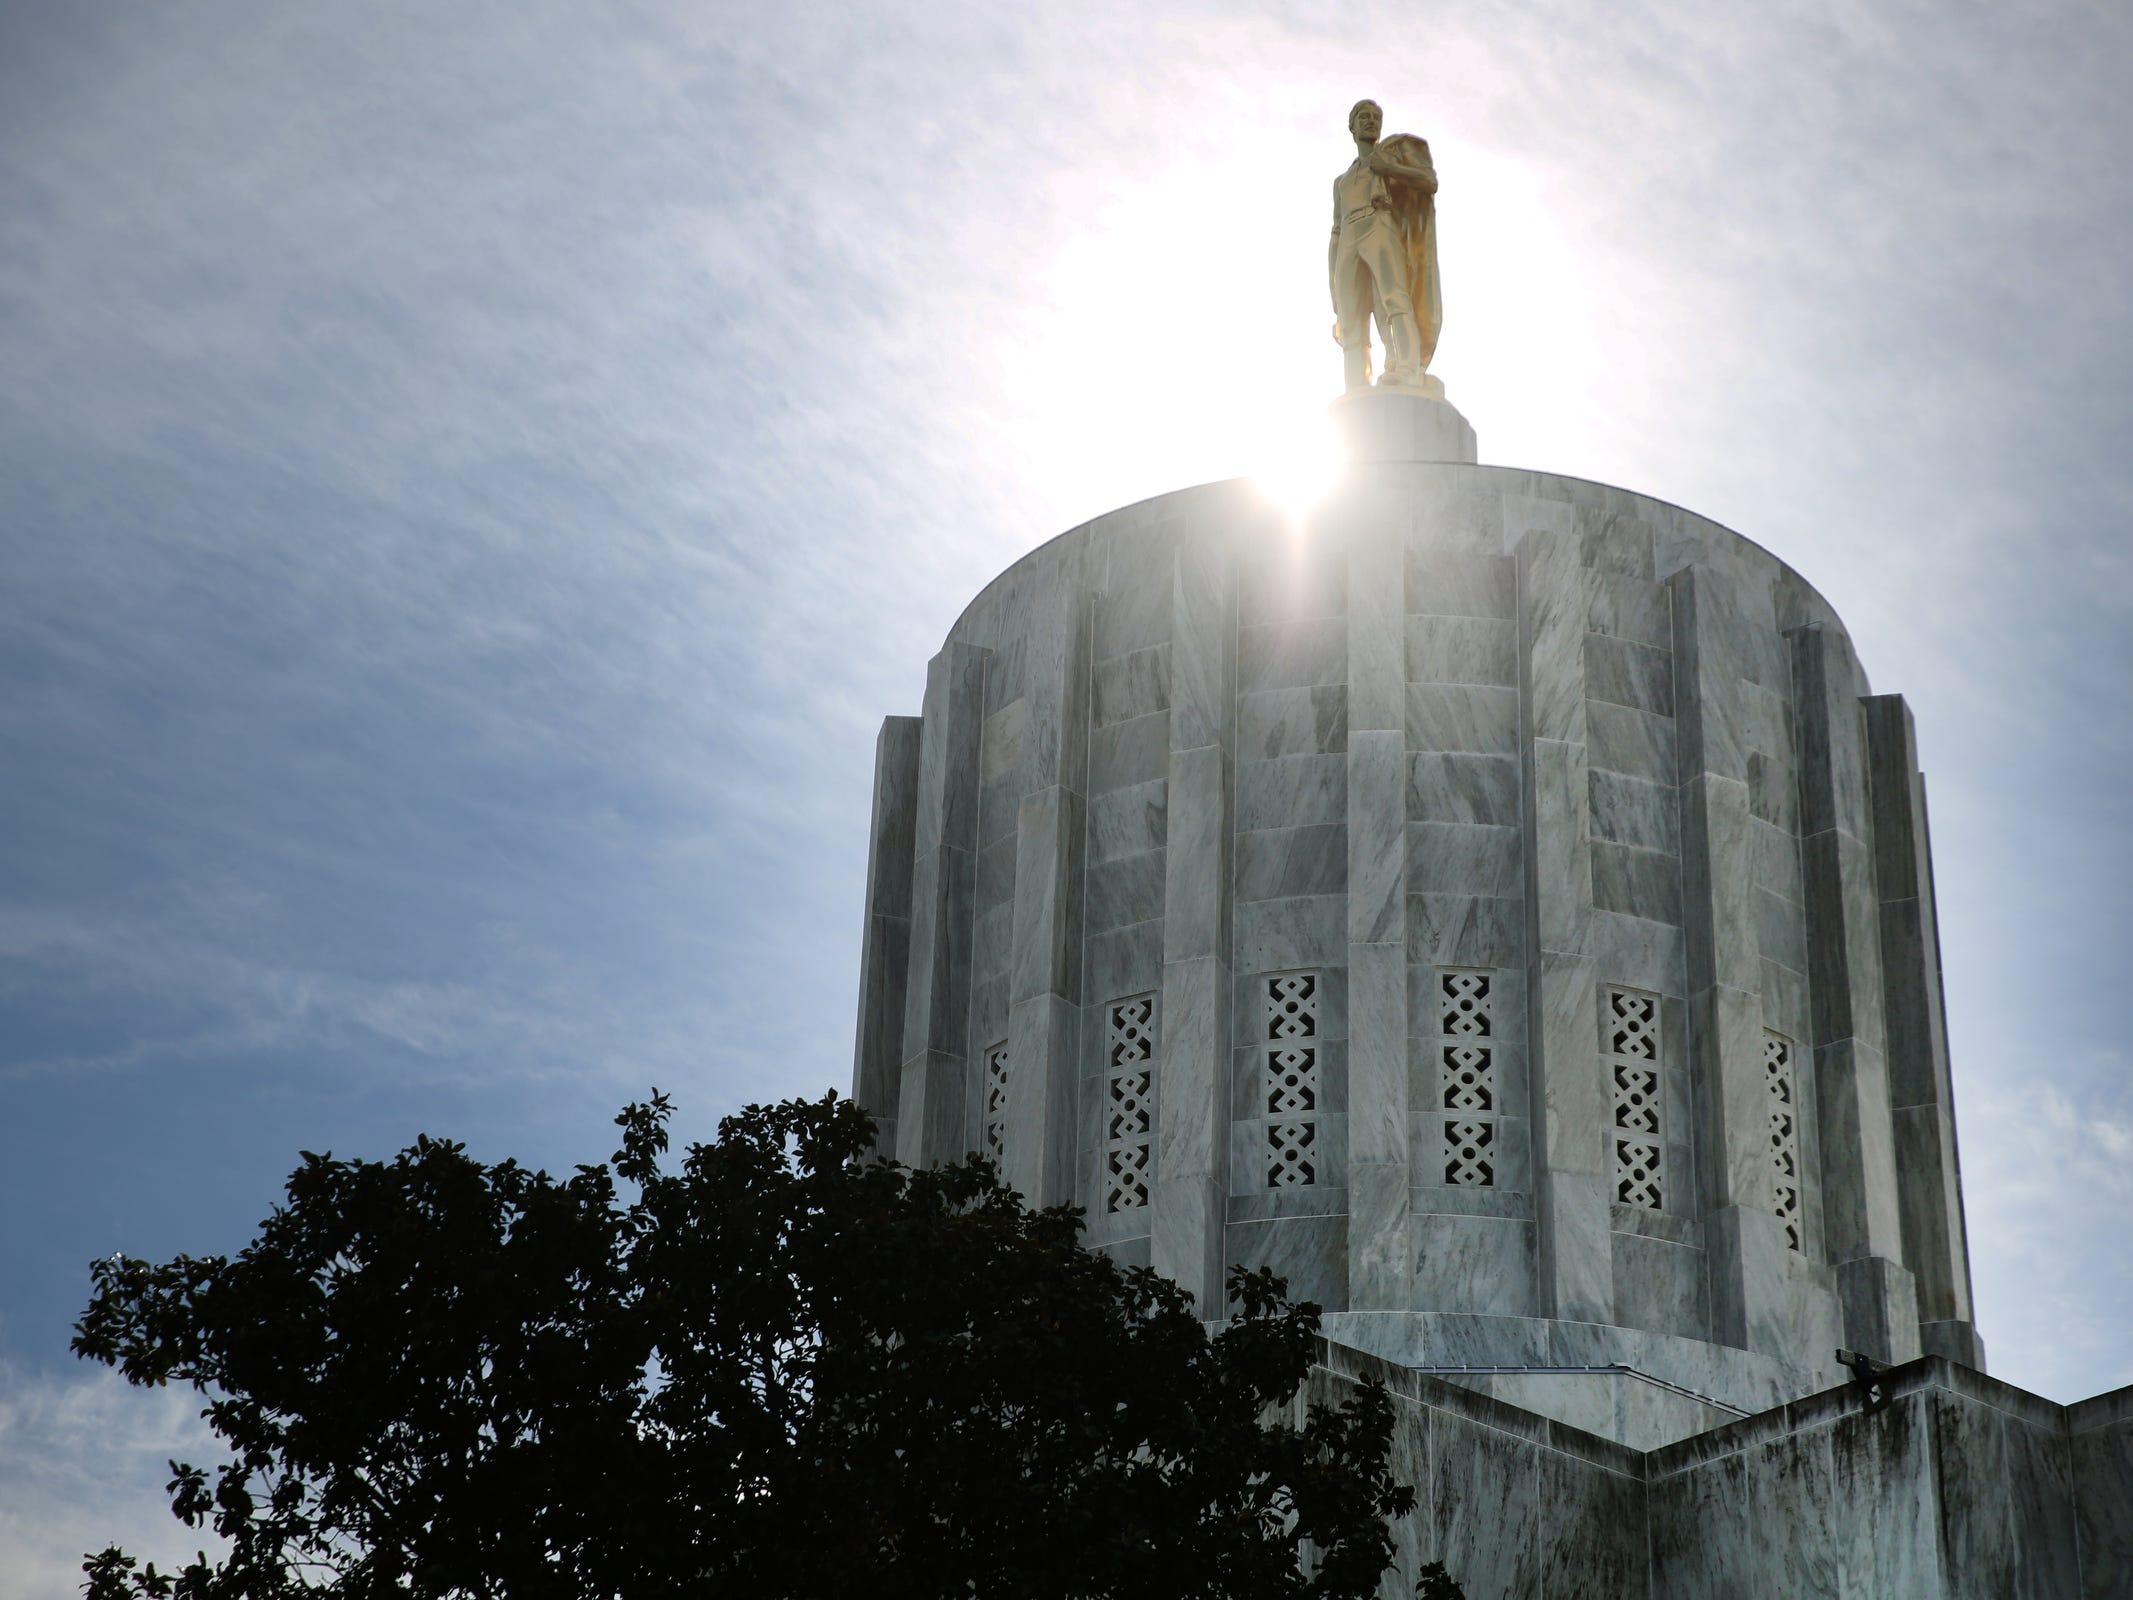 The Oregon State Capitol in Salem on Tuesday, Feb. 26, 2019.